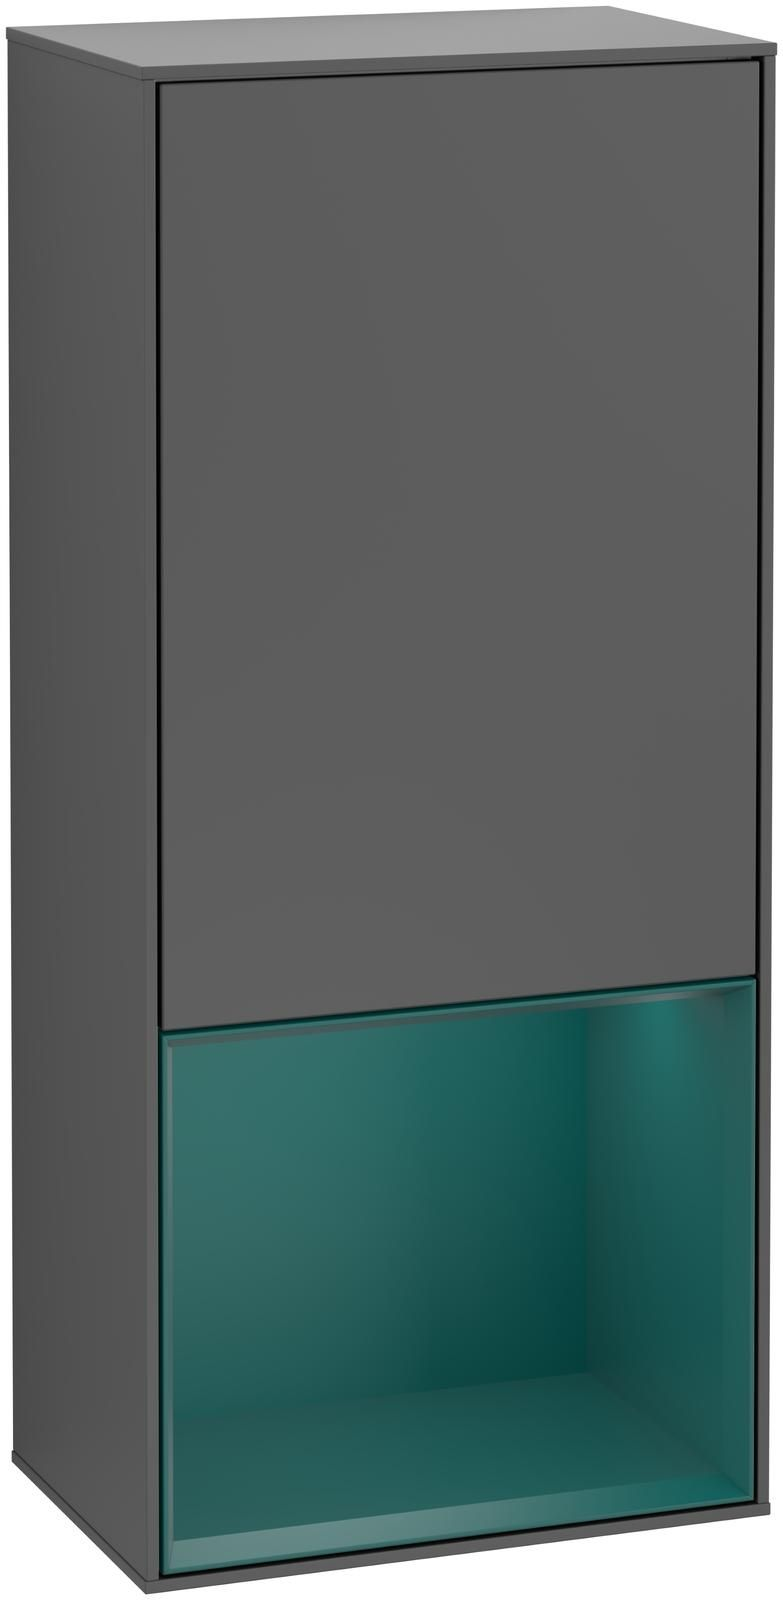 Villeroy & Boch Finion G54 Seitenschrank mit Regalelement 1 Tür Anschlag links LED-Beleuchtung B:41,8xH:93,6xT:27cm Front, Korpus: Anthracite Matt, Regal: Cedar G540GSGK